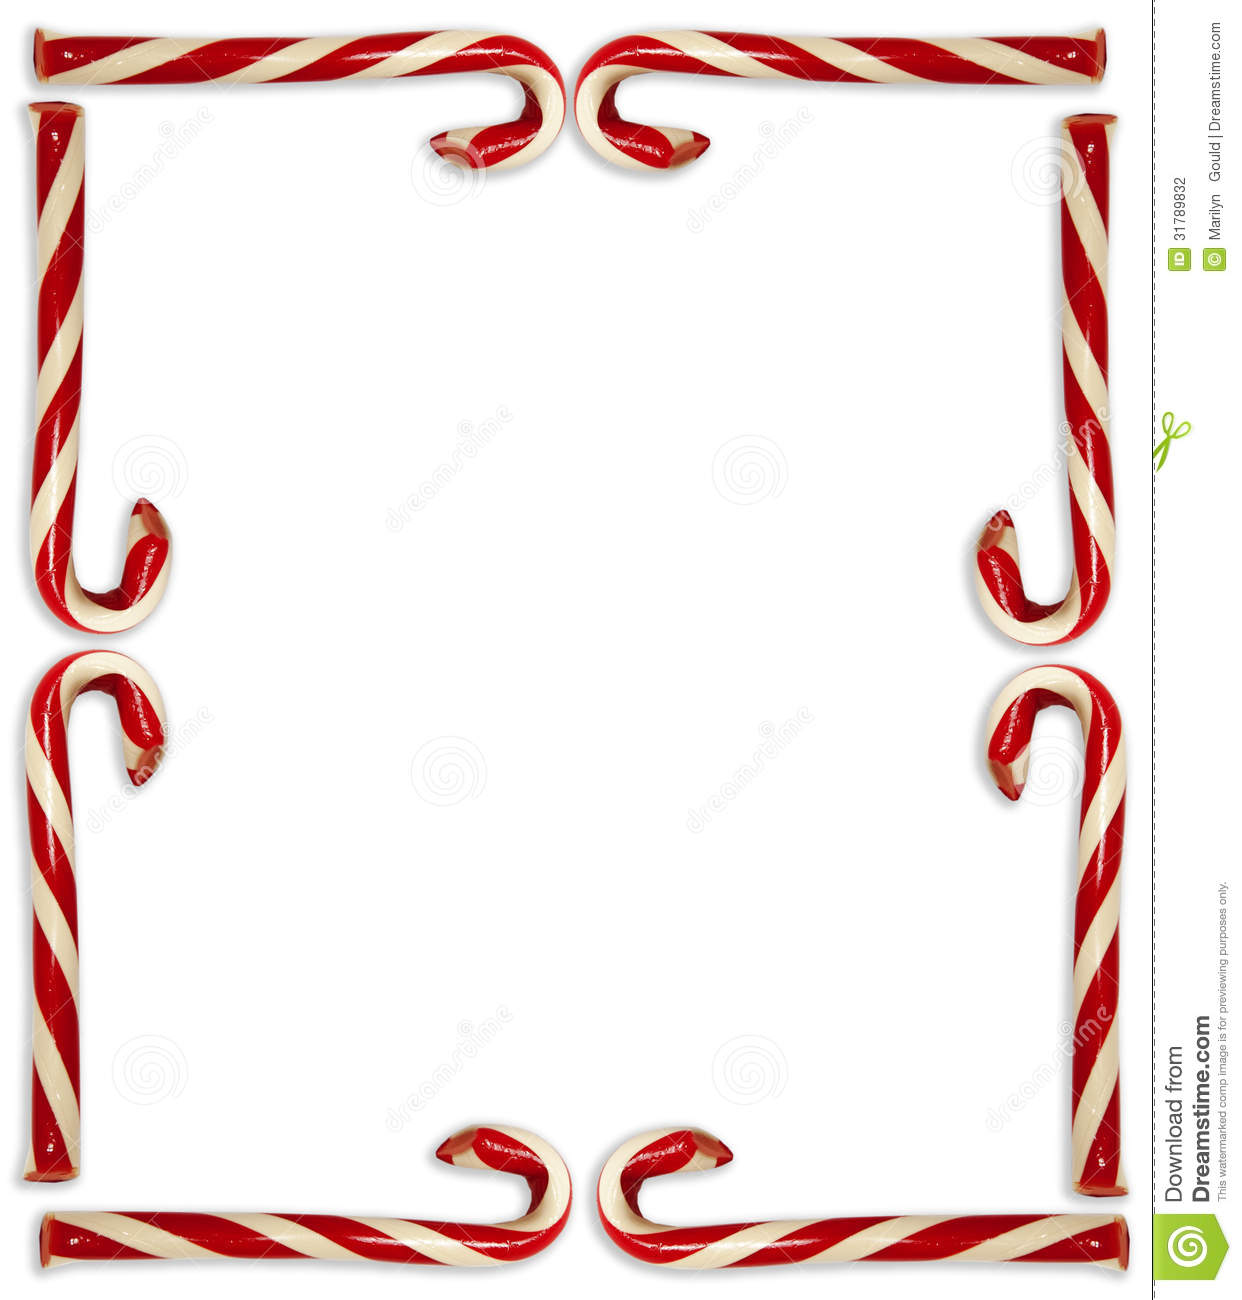 Free Candy Cane Border Clipart.